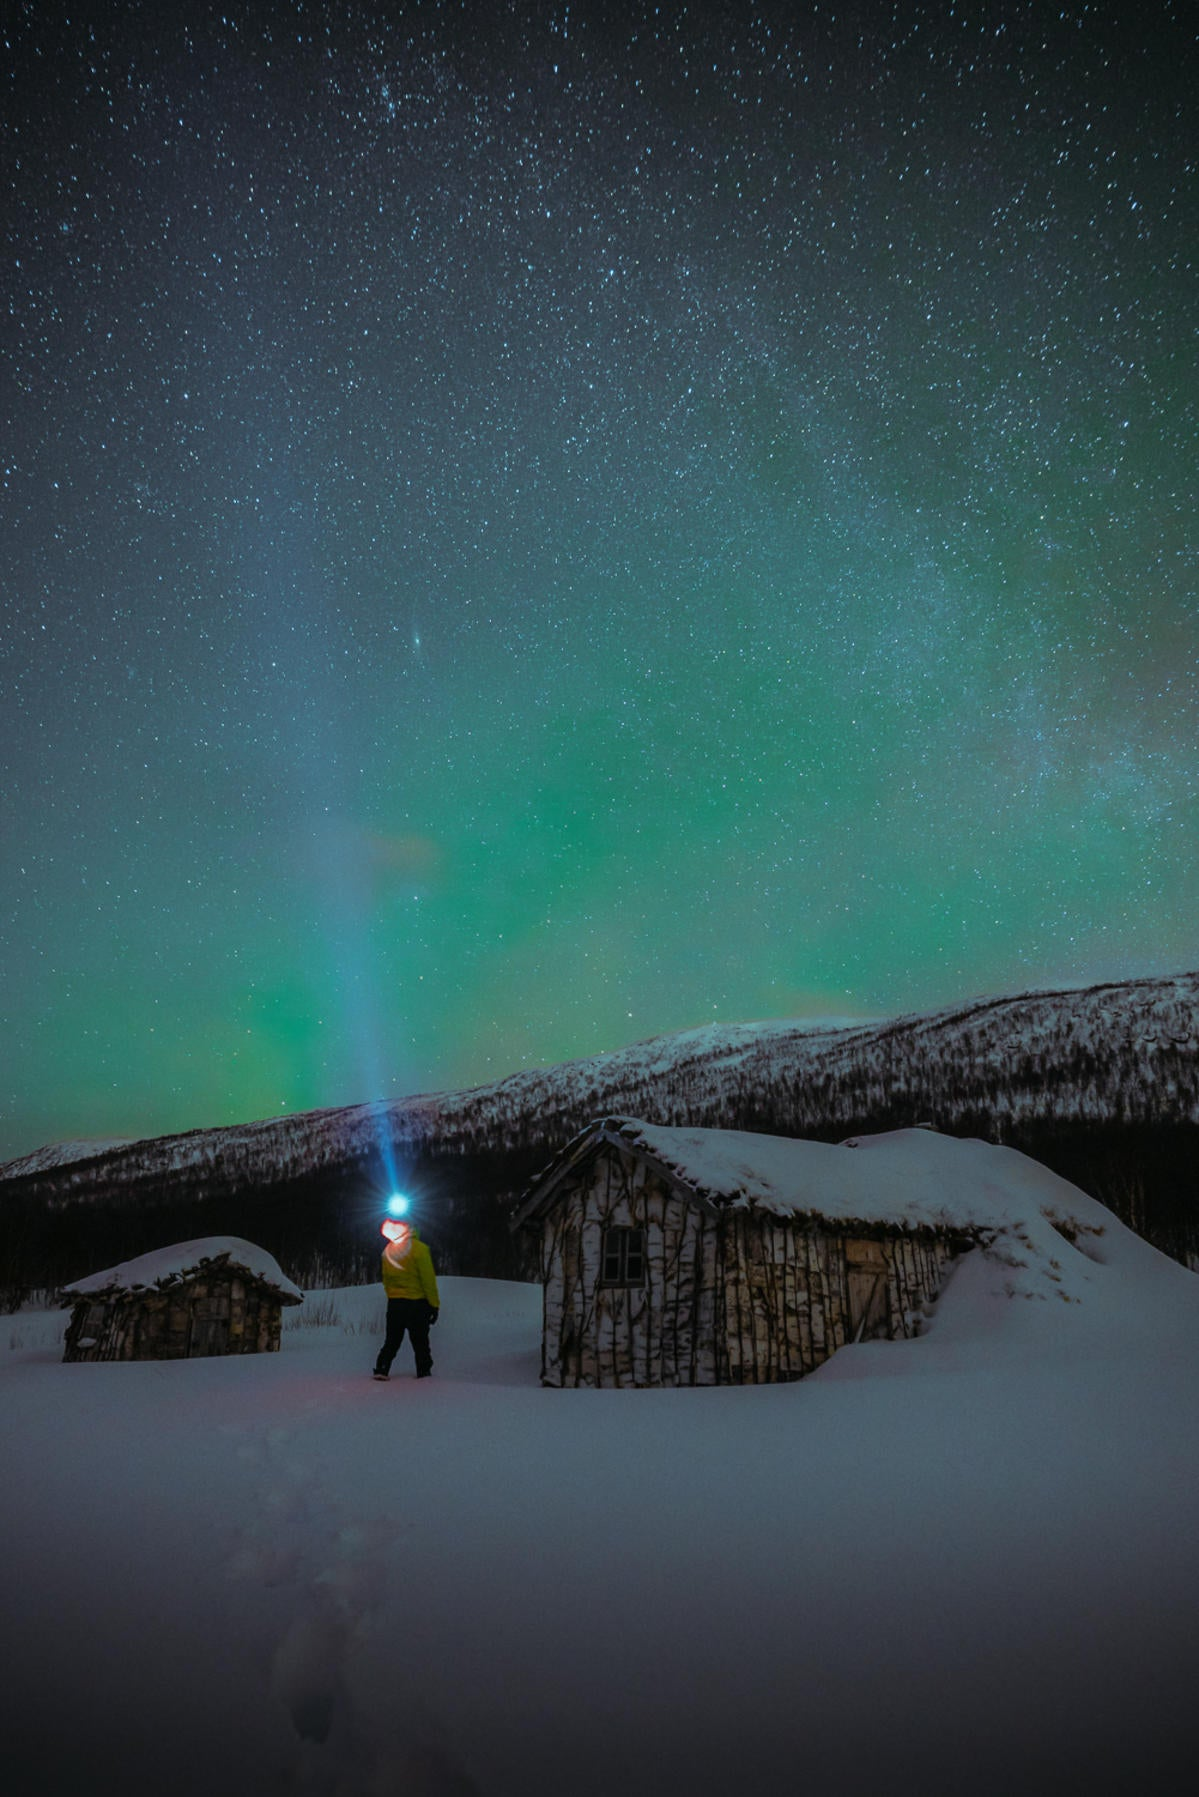 How To Photograph The Northern Lights: From Camera Setup To Predicting Where They'll Be